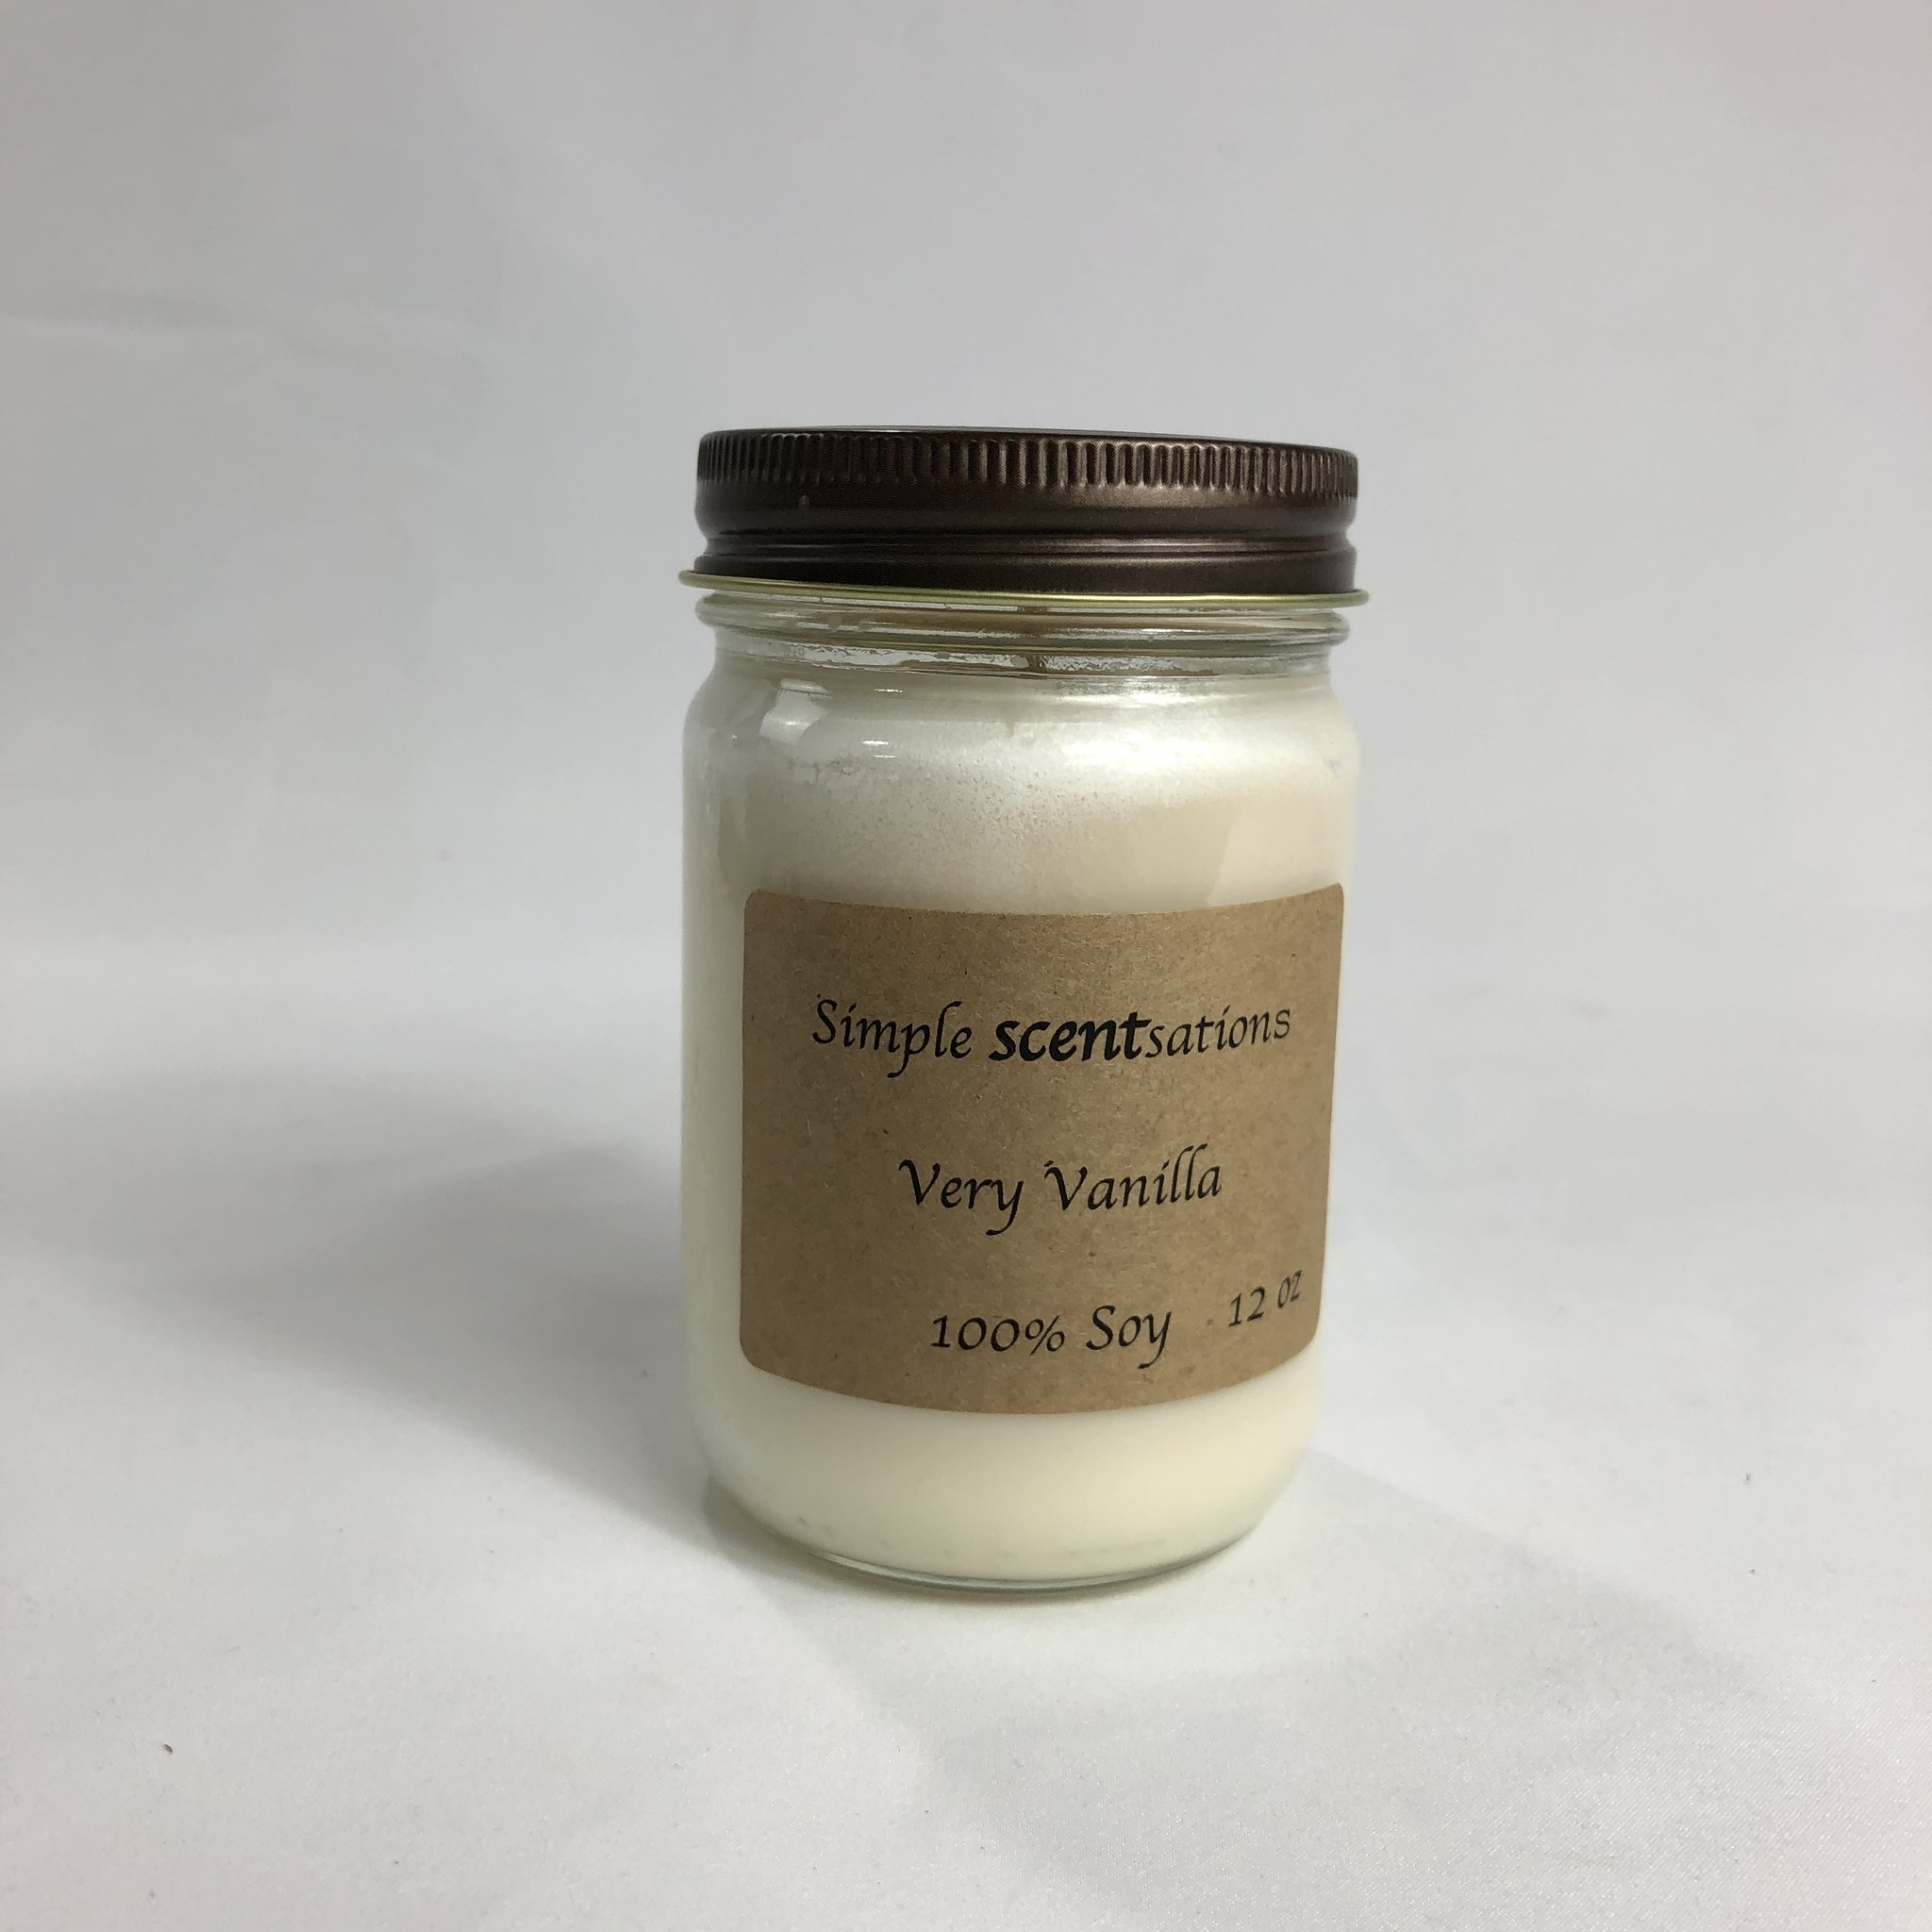 Simple Scentsation Very Vanilla 12 oz Soy Candle